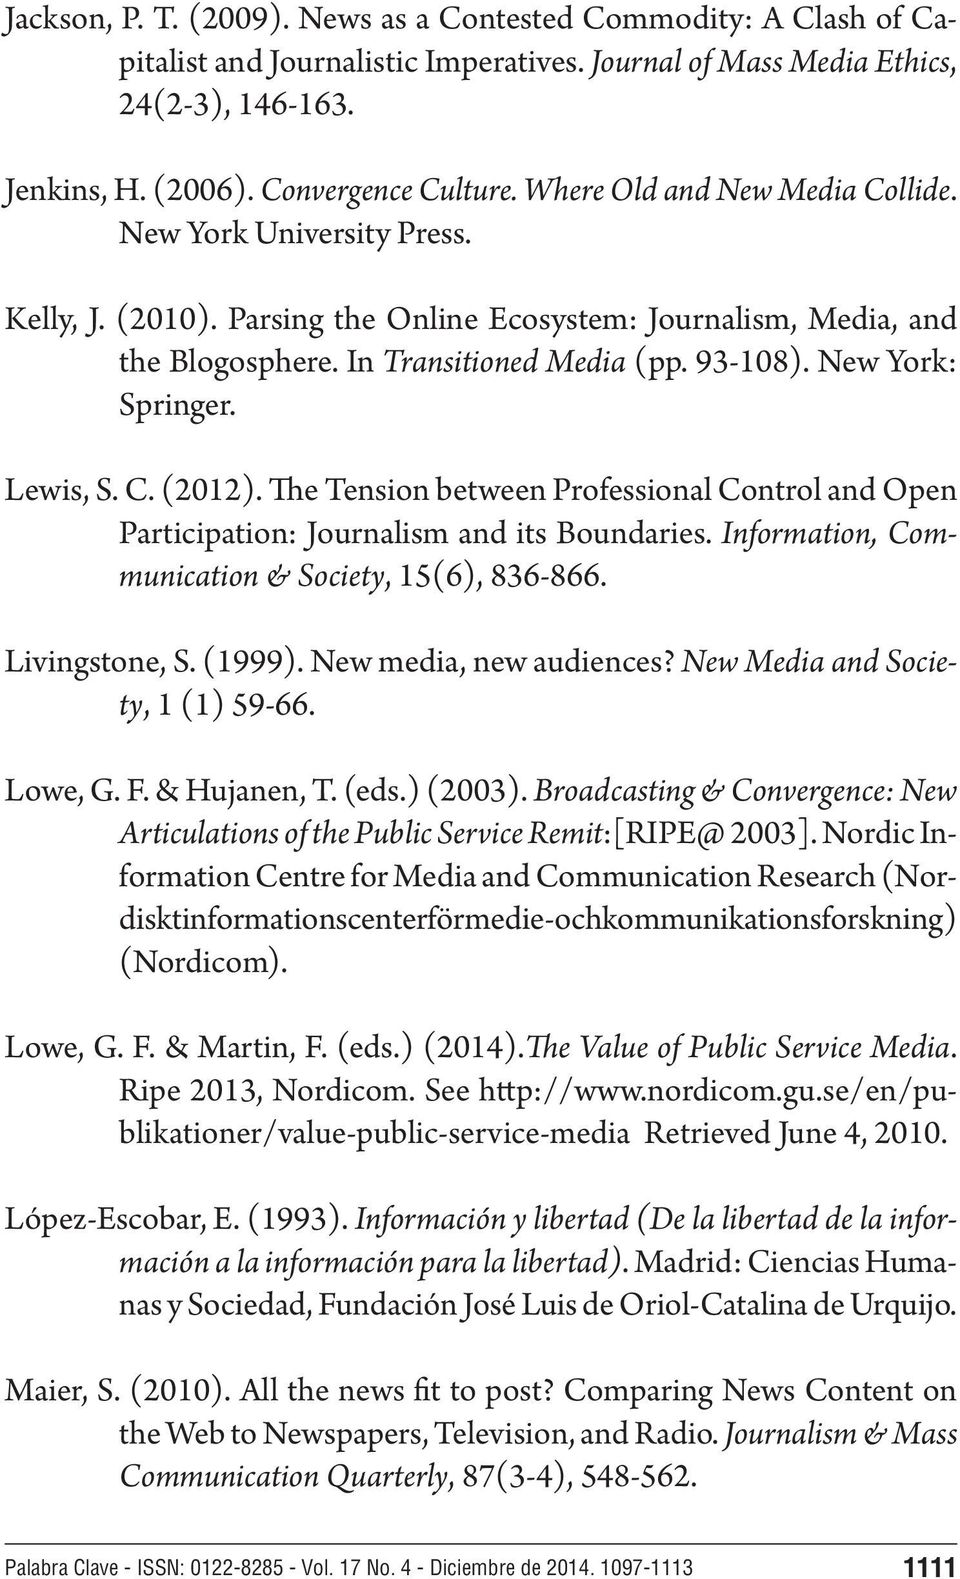 New York: Springer. Lewis, S. C. (2012). The Tension between Professional Control and Open Participation: Journalism and its Boundaries. Information, Communication & Society, 15(6), 836-866.